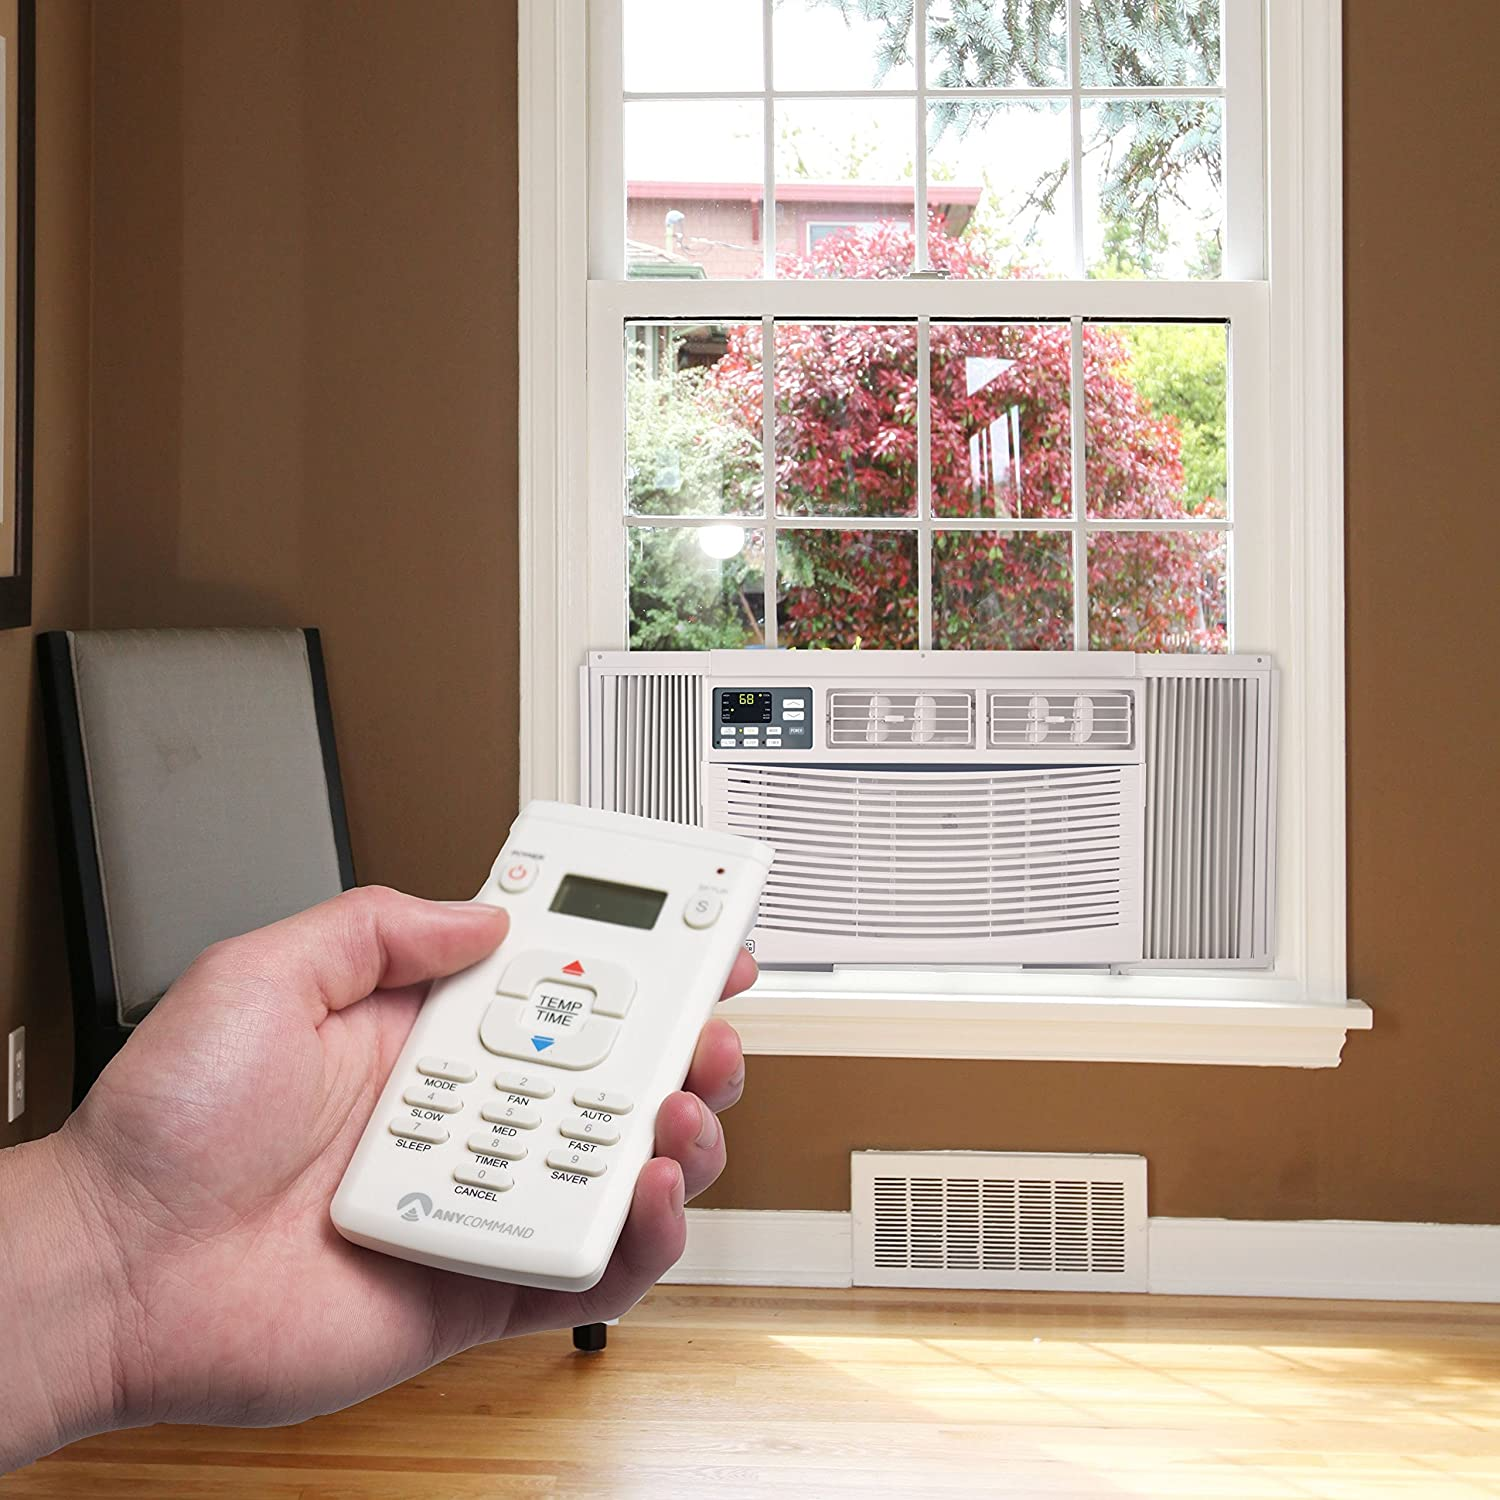 AnyCommand ACR-10 Universal AC Remote Control for Window Air Conditioners